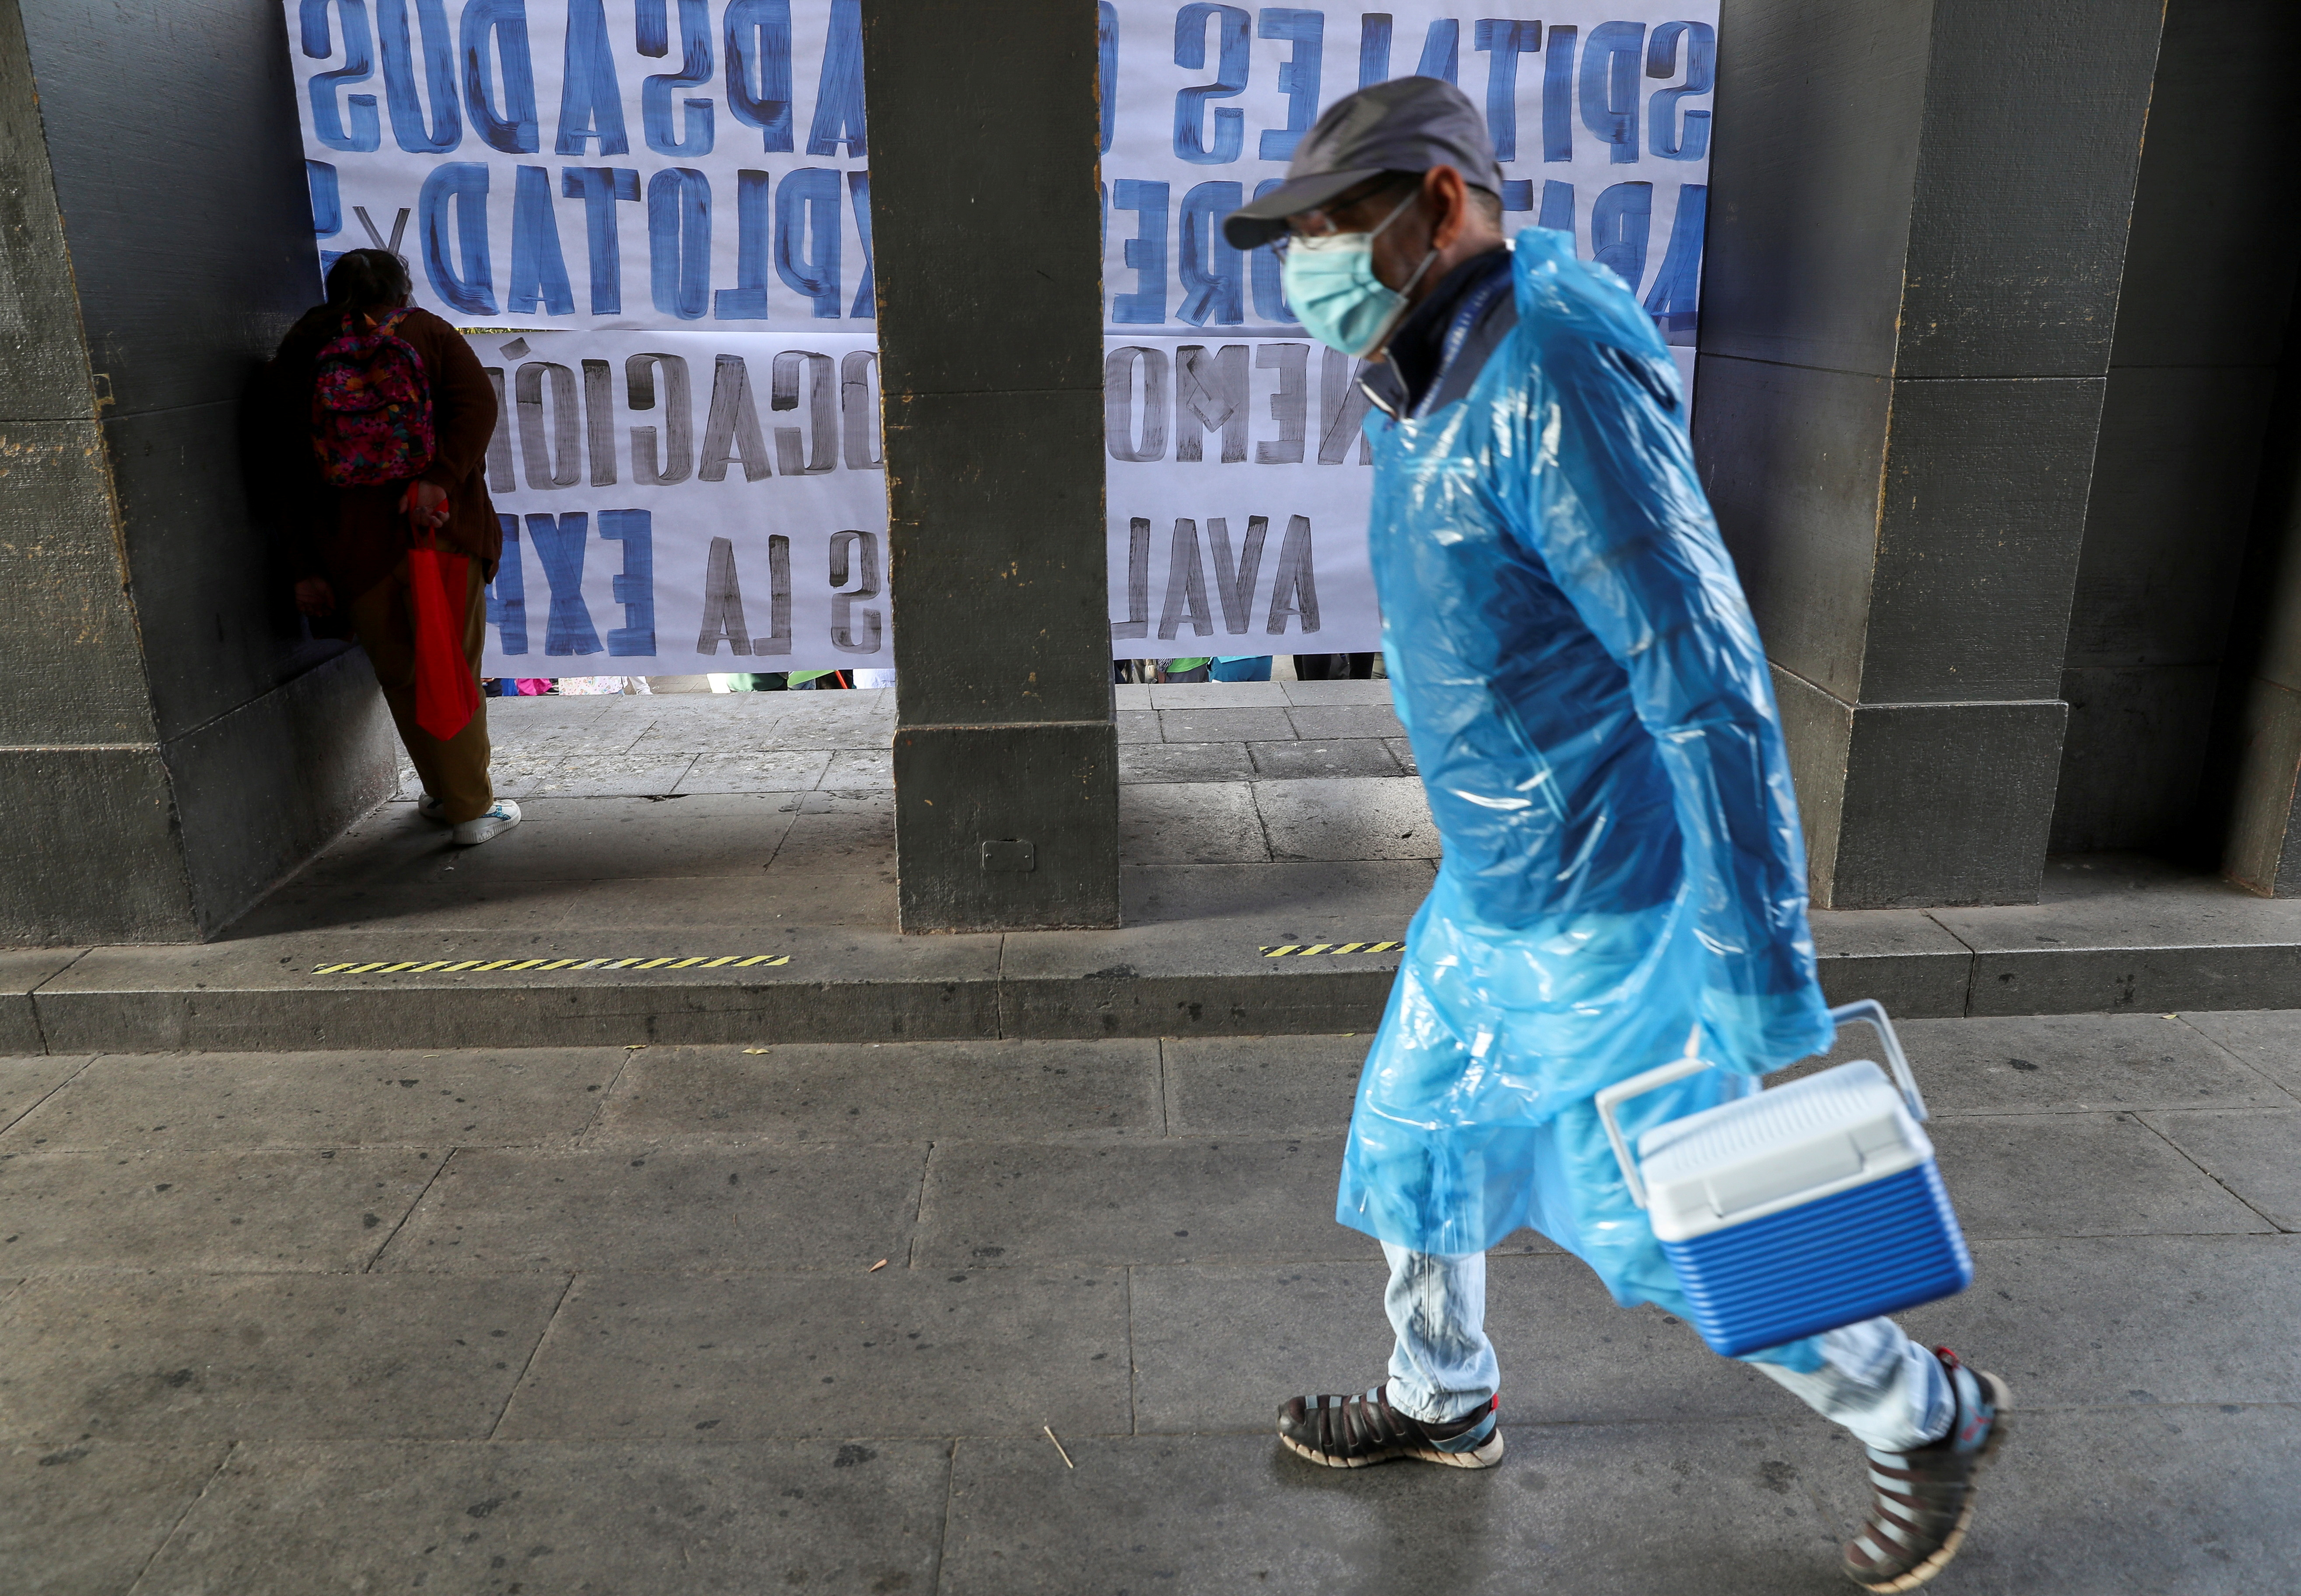 A healthcare worker carries a cooler during a rally outside a hospital to demand better work conditions, according to organisers, amid the coronavirus disease (COVID-19) pandemic in Santiago, Chile April 8, 2021. REUTERS/Ivan Alvarado/File Photo